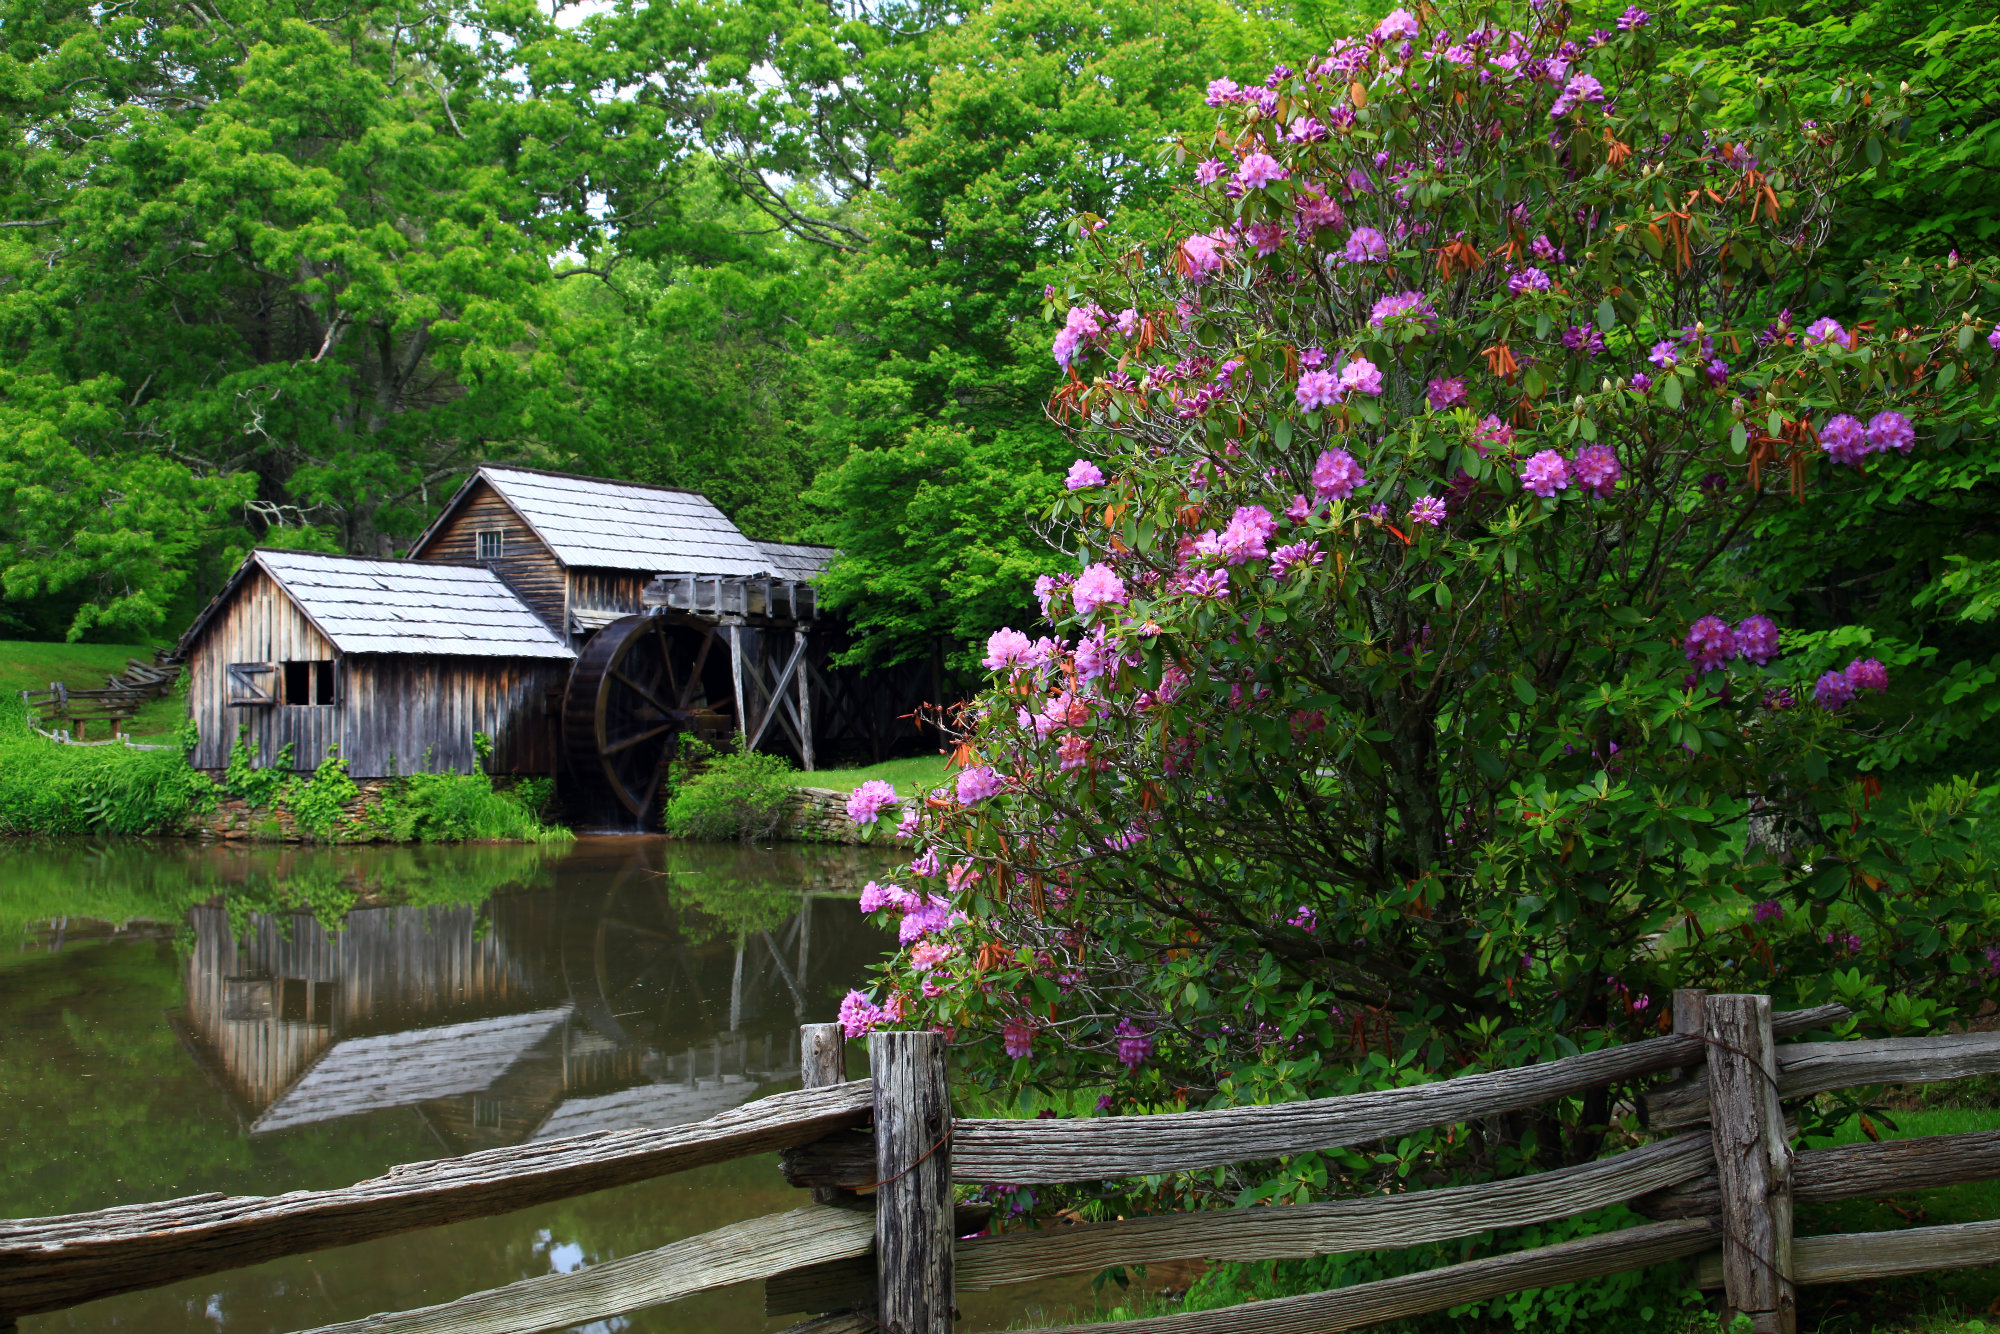 Blue Ridge Auto >> Mabry Mill - Milepost 176 - Blue Ridge Parkway (U.S